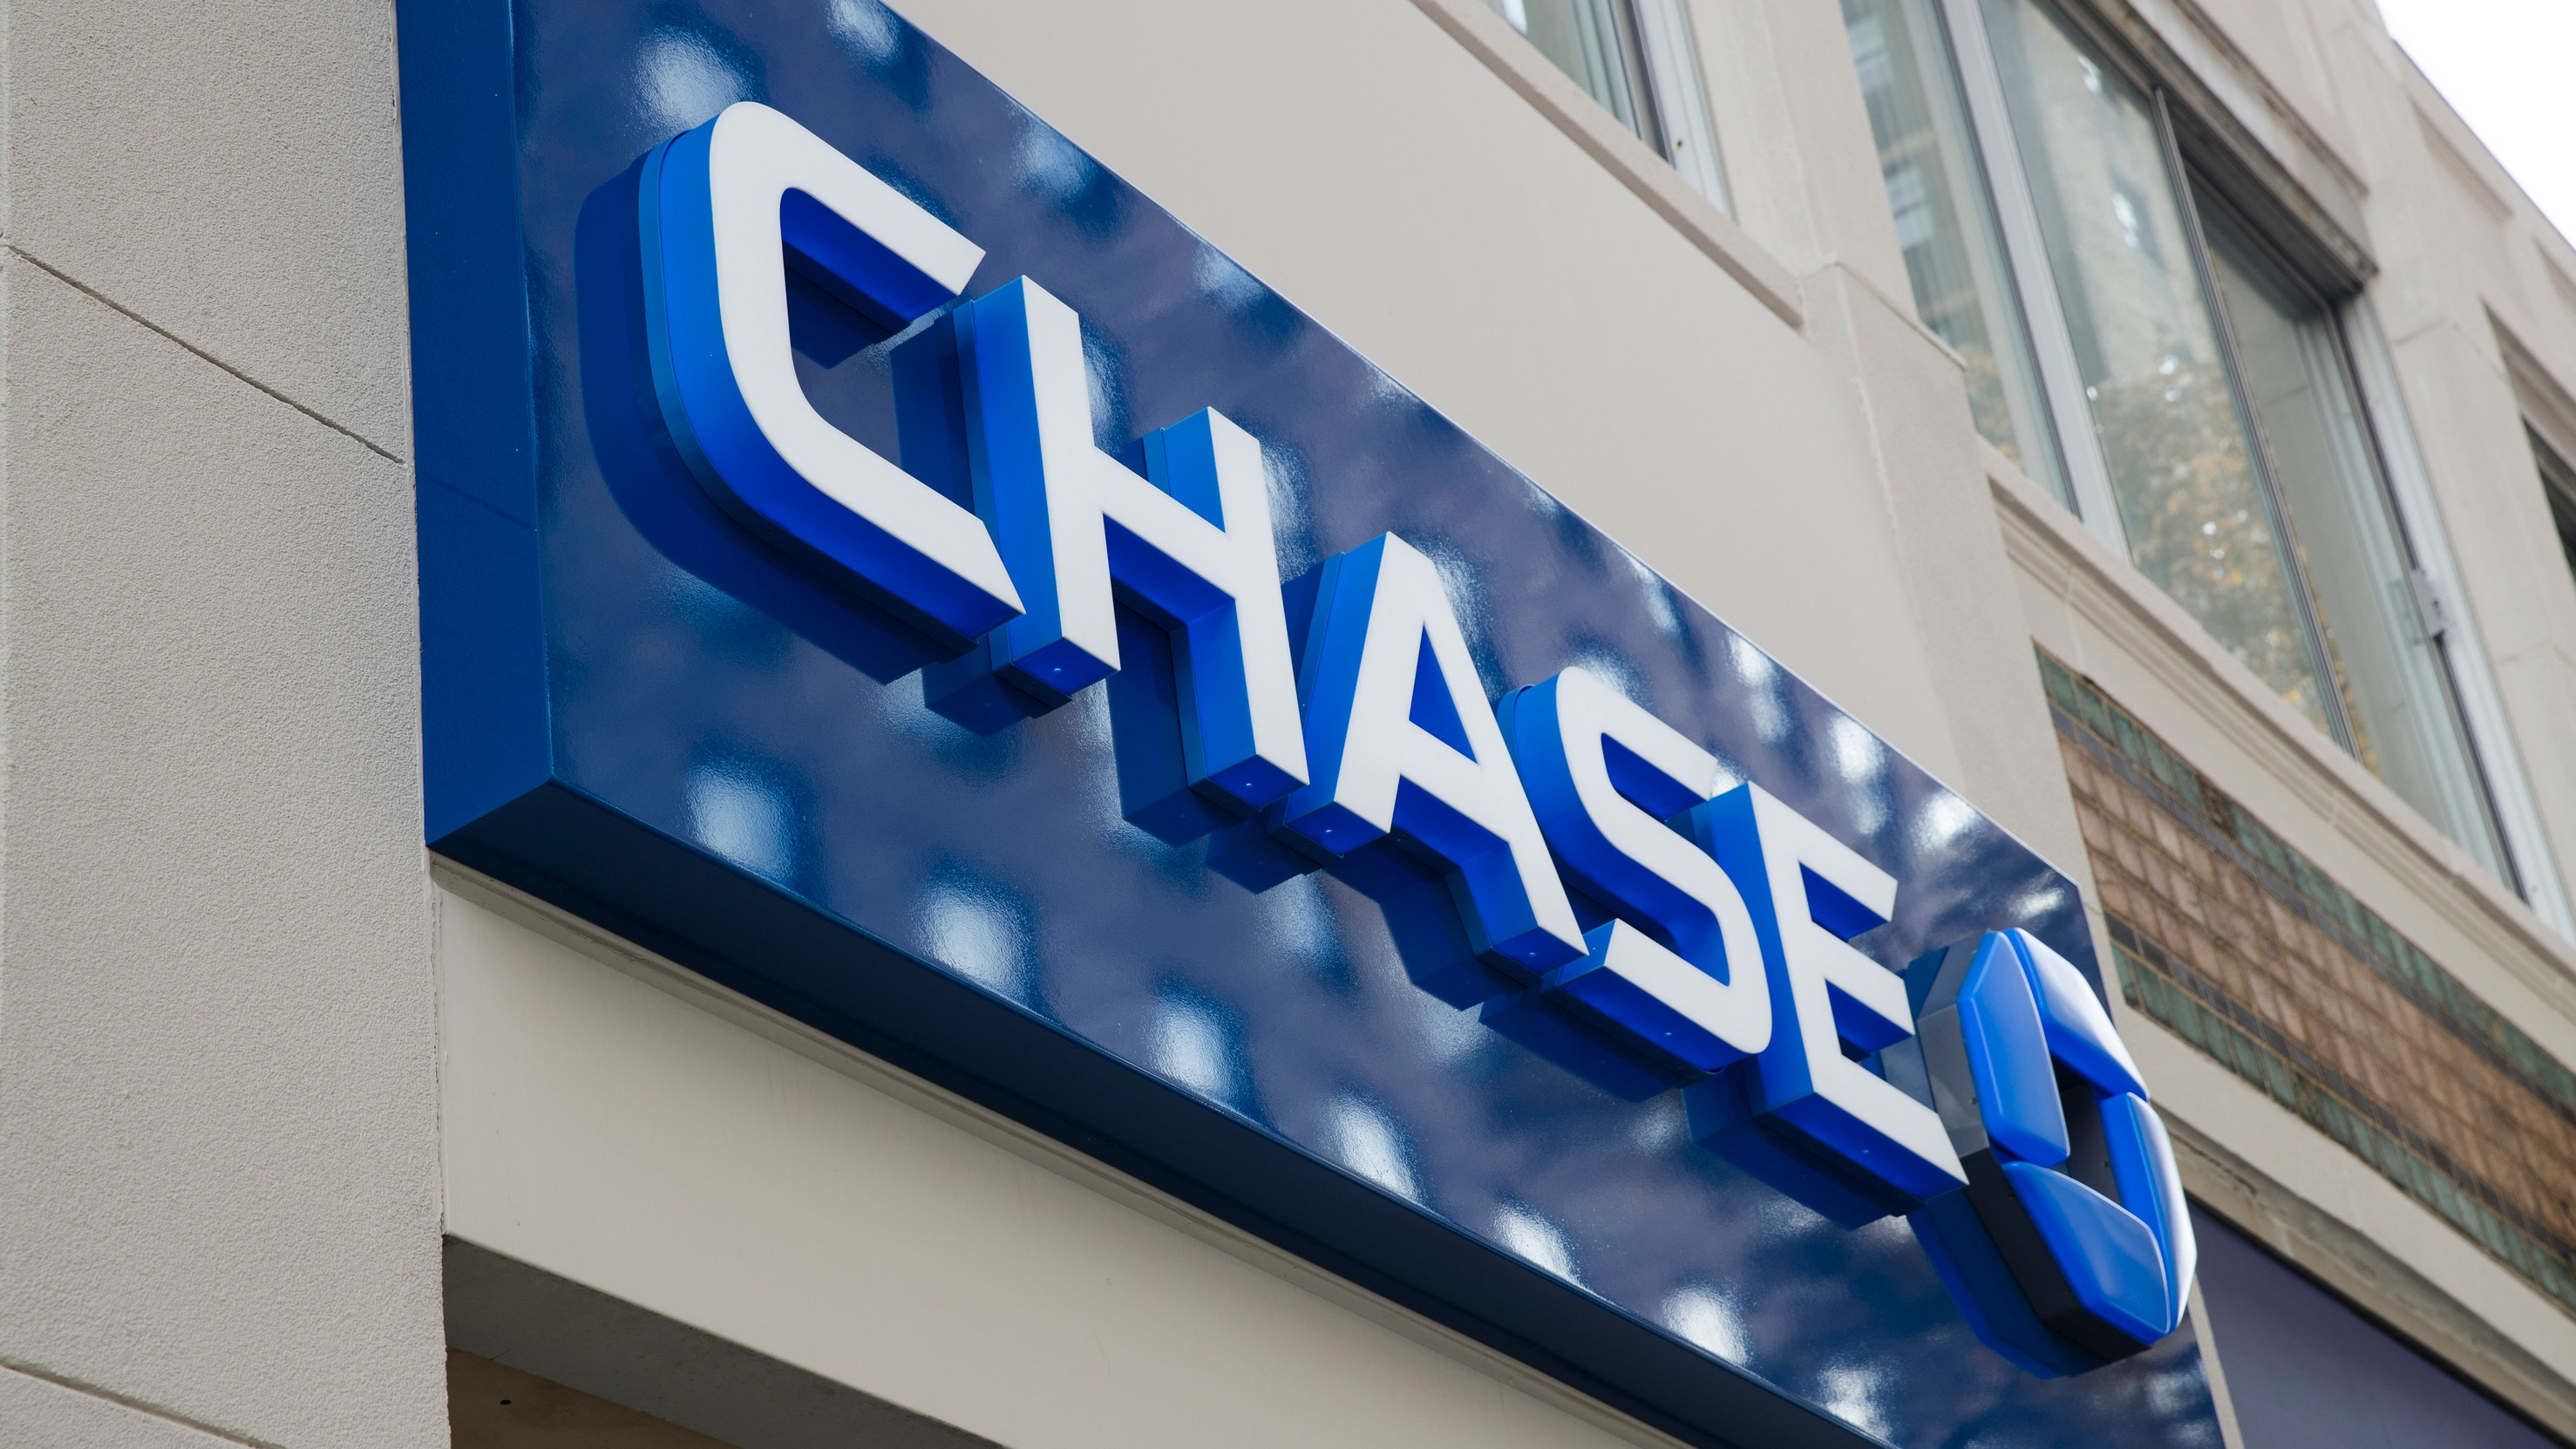 JPMorgan Chase 2Q earnings topped expectations   Fox Business